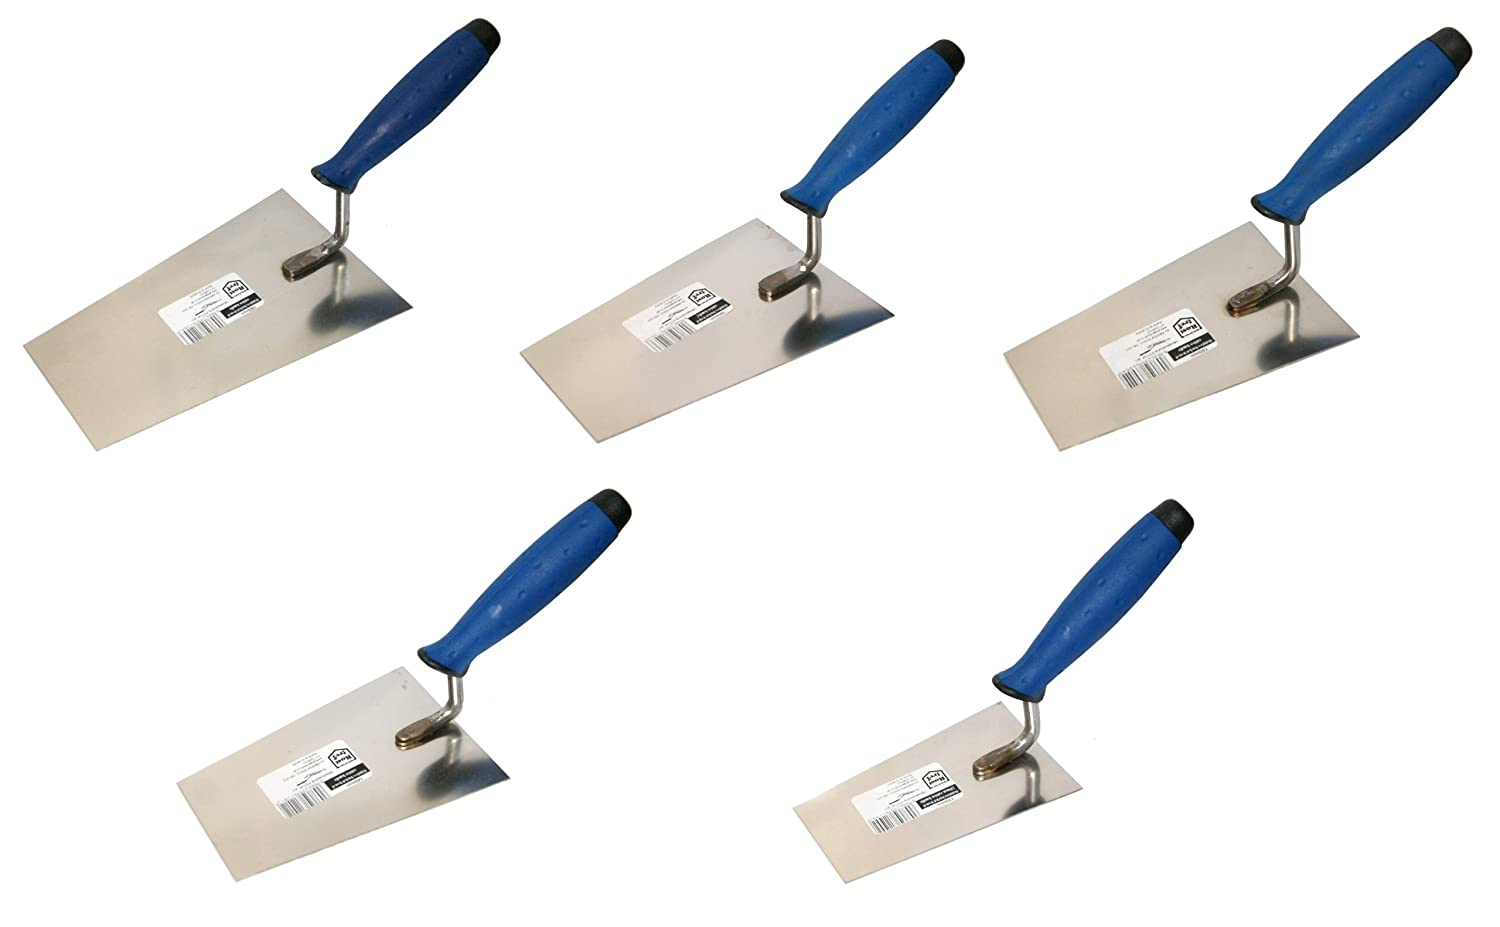 5 x Bucket Trowel. Rubber Handle. Stainless Steel (SET) Proper Tools bucket trowel SET of 5